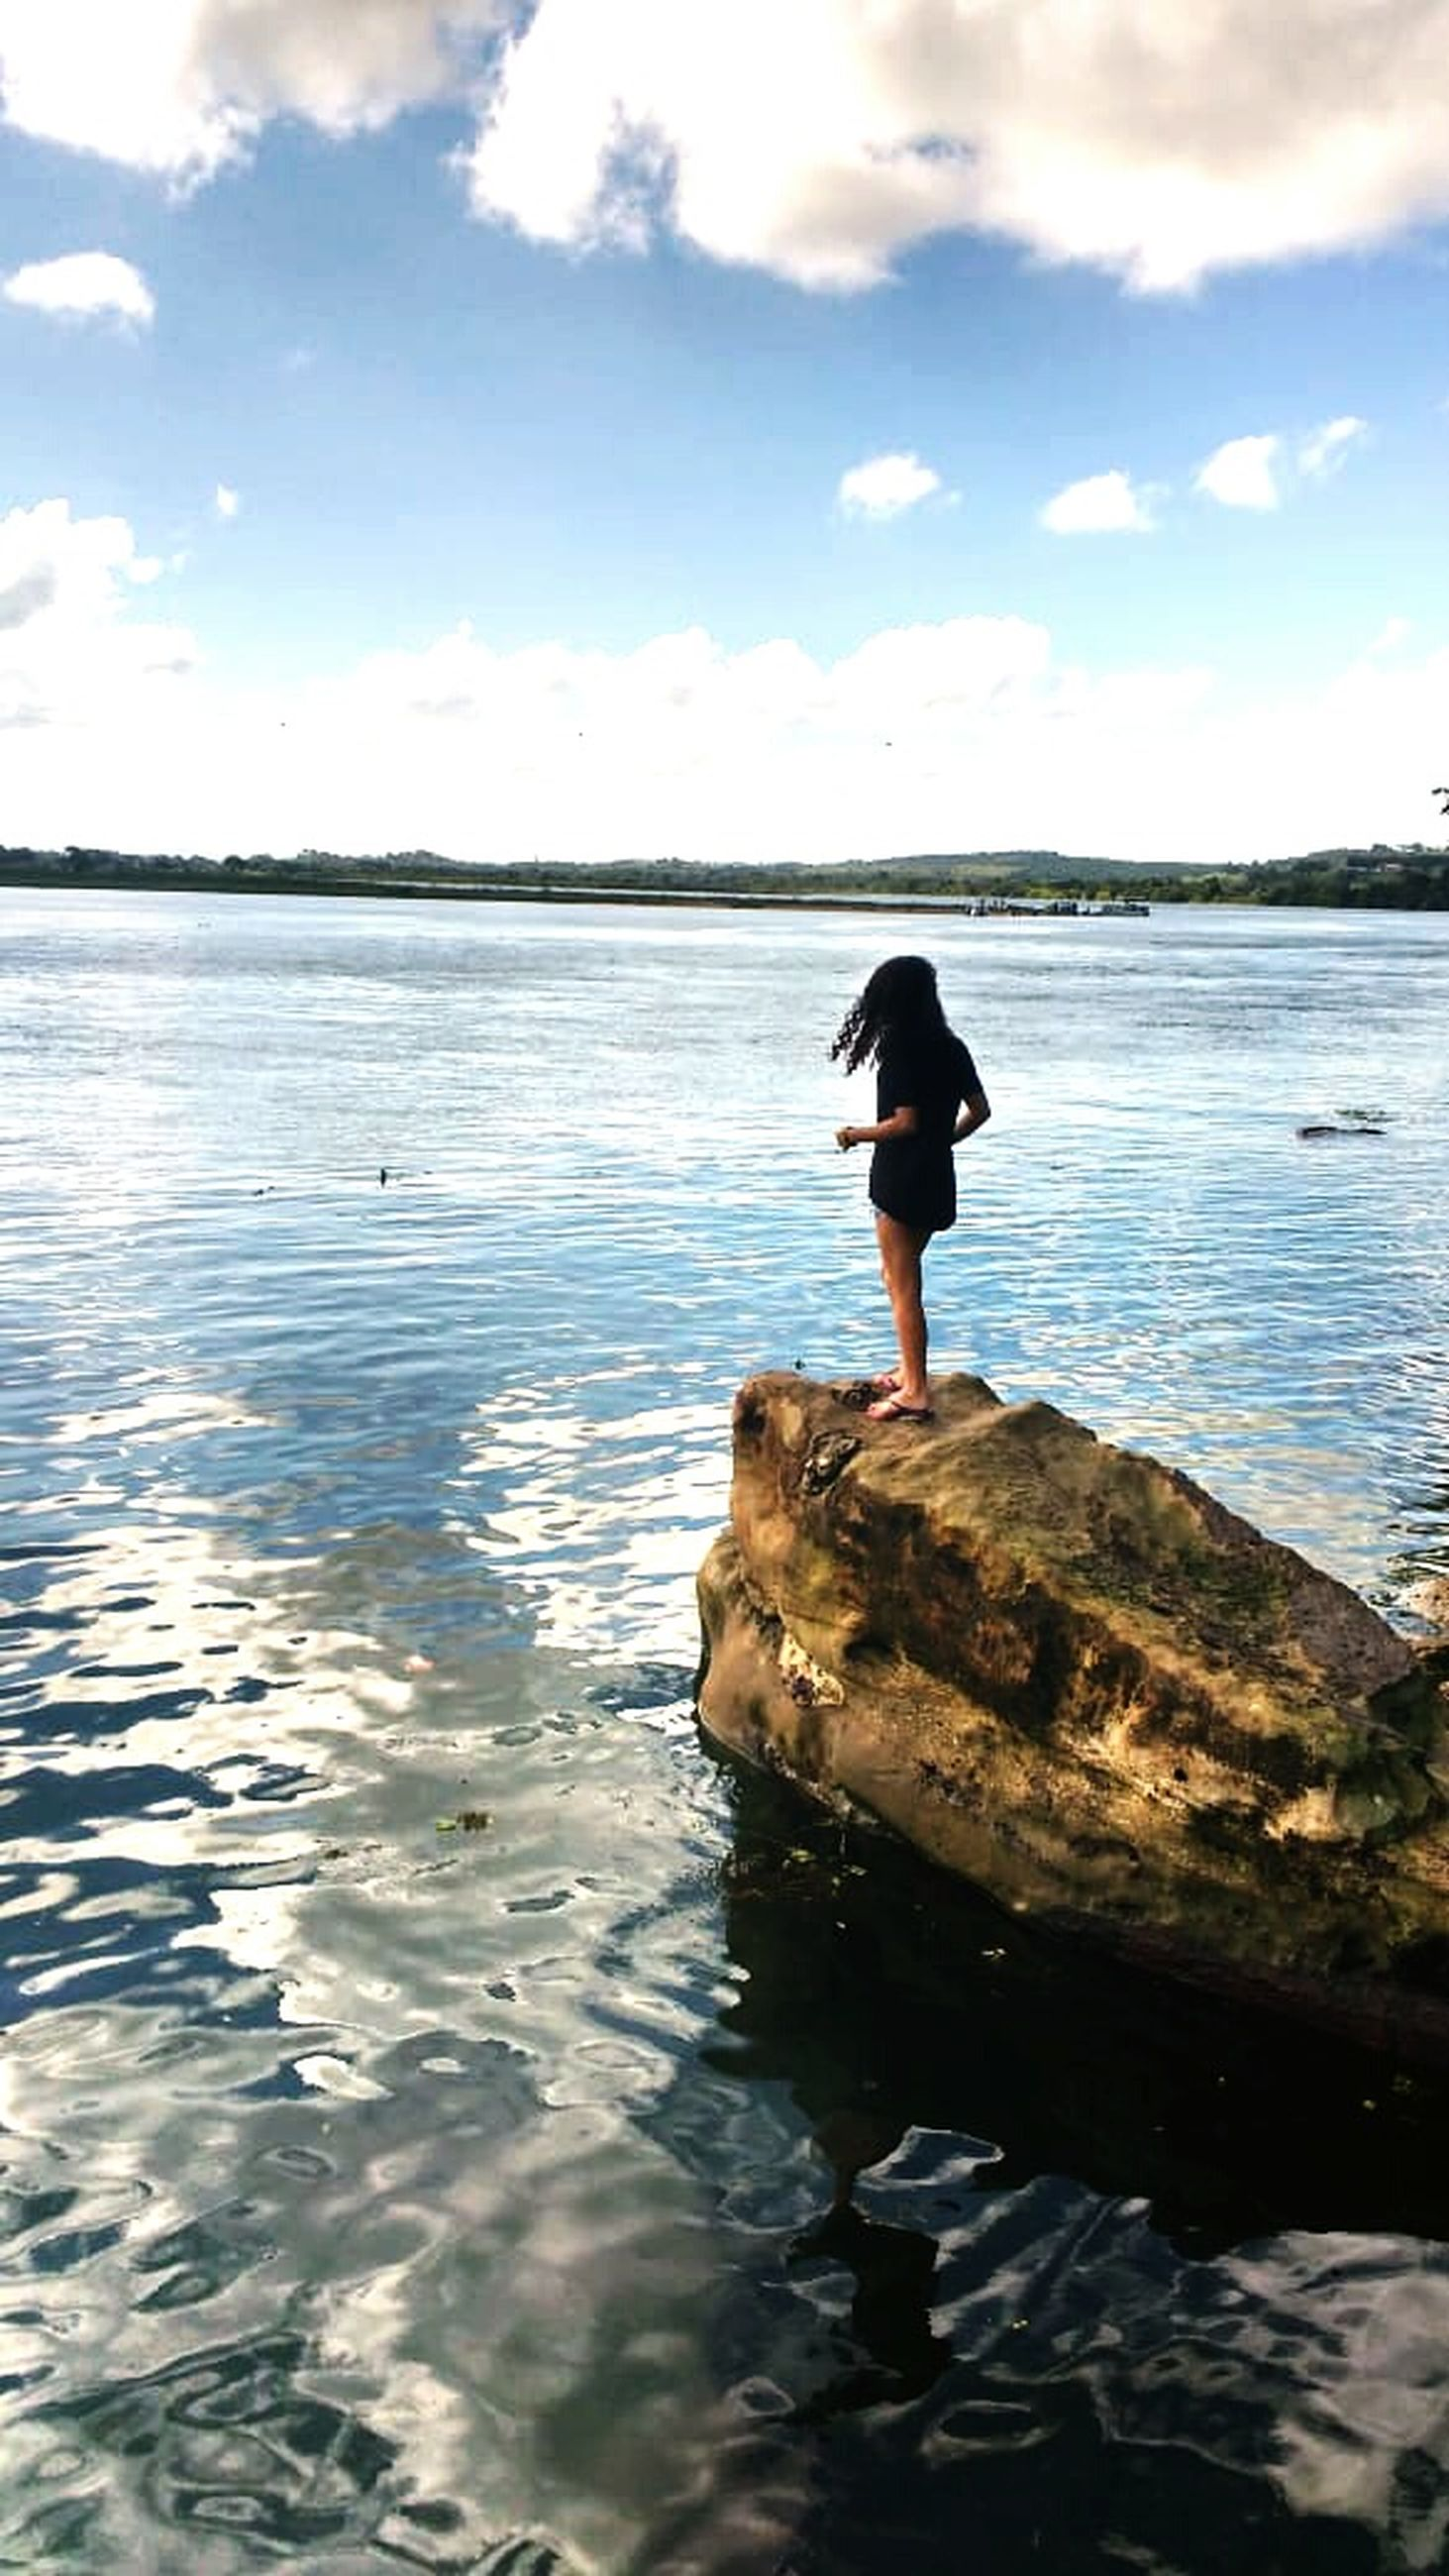 water, sky, sea, rock, real people, one person, beauty in nature, rock - object, solid, leisure activity, scenics - nature, lifestyles, cloud - sky, nature, standing, tranquility, waterfront, vacations, beach, outdoors